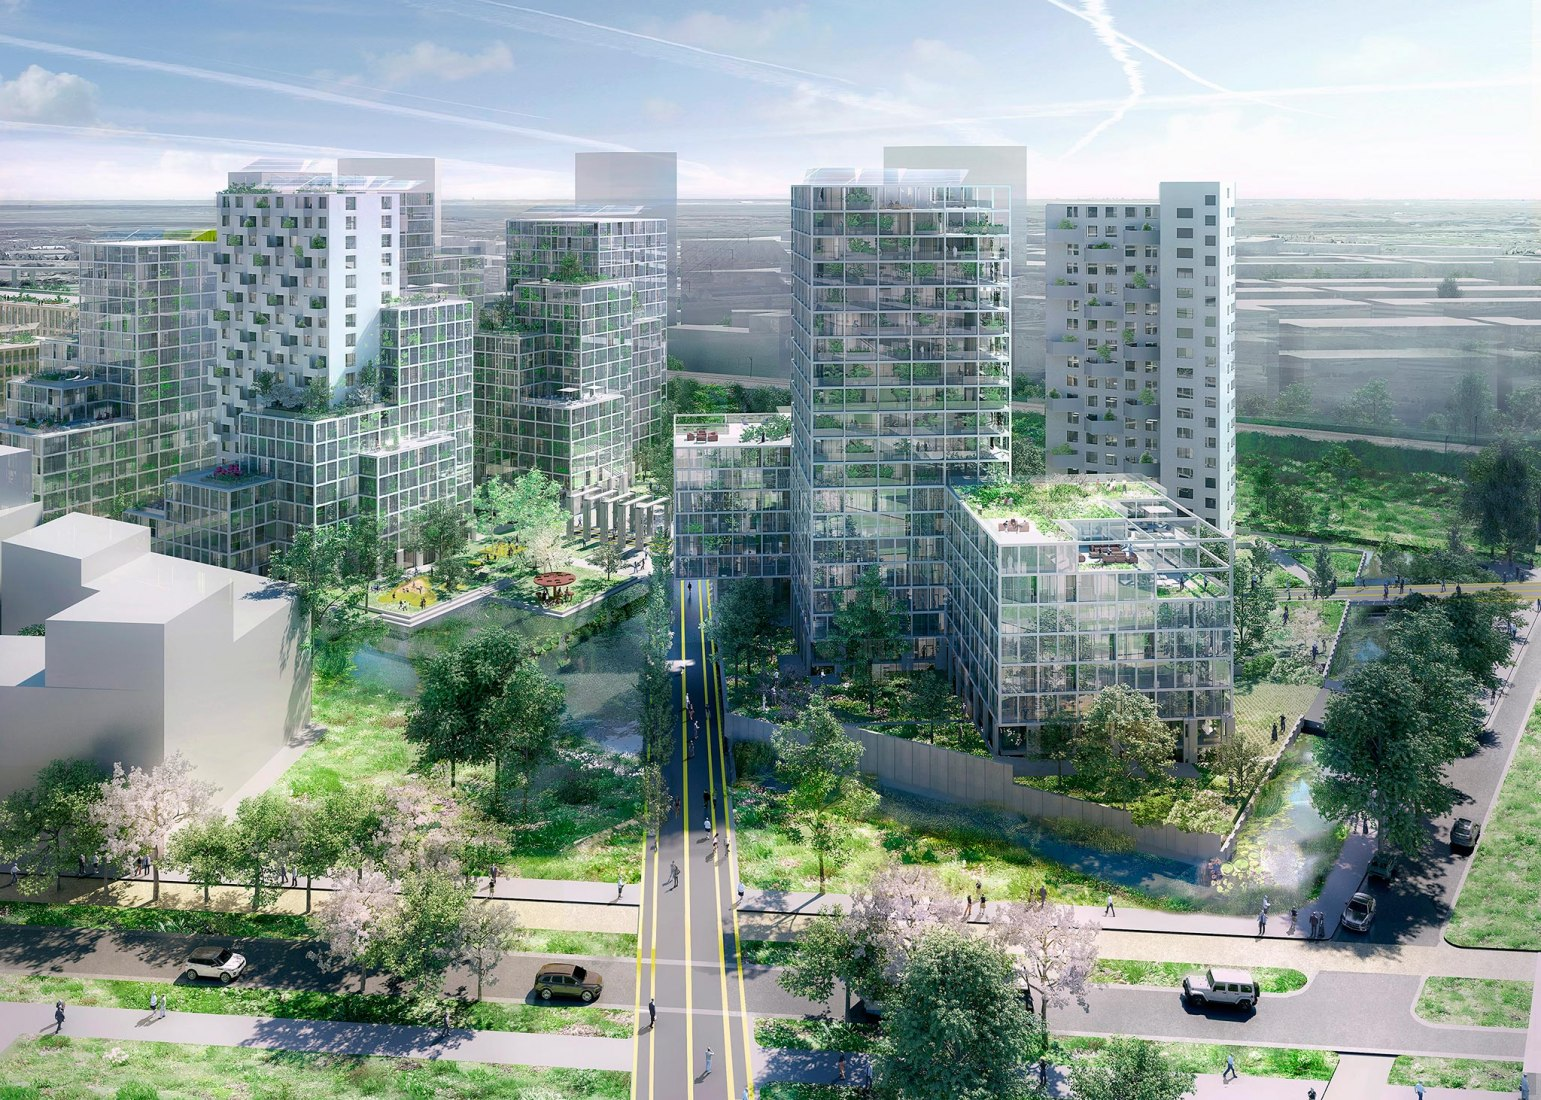 Overview. Masterplan for the Bajes Kwartier by OMA. Image by Robota, Courtesy of OMA